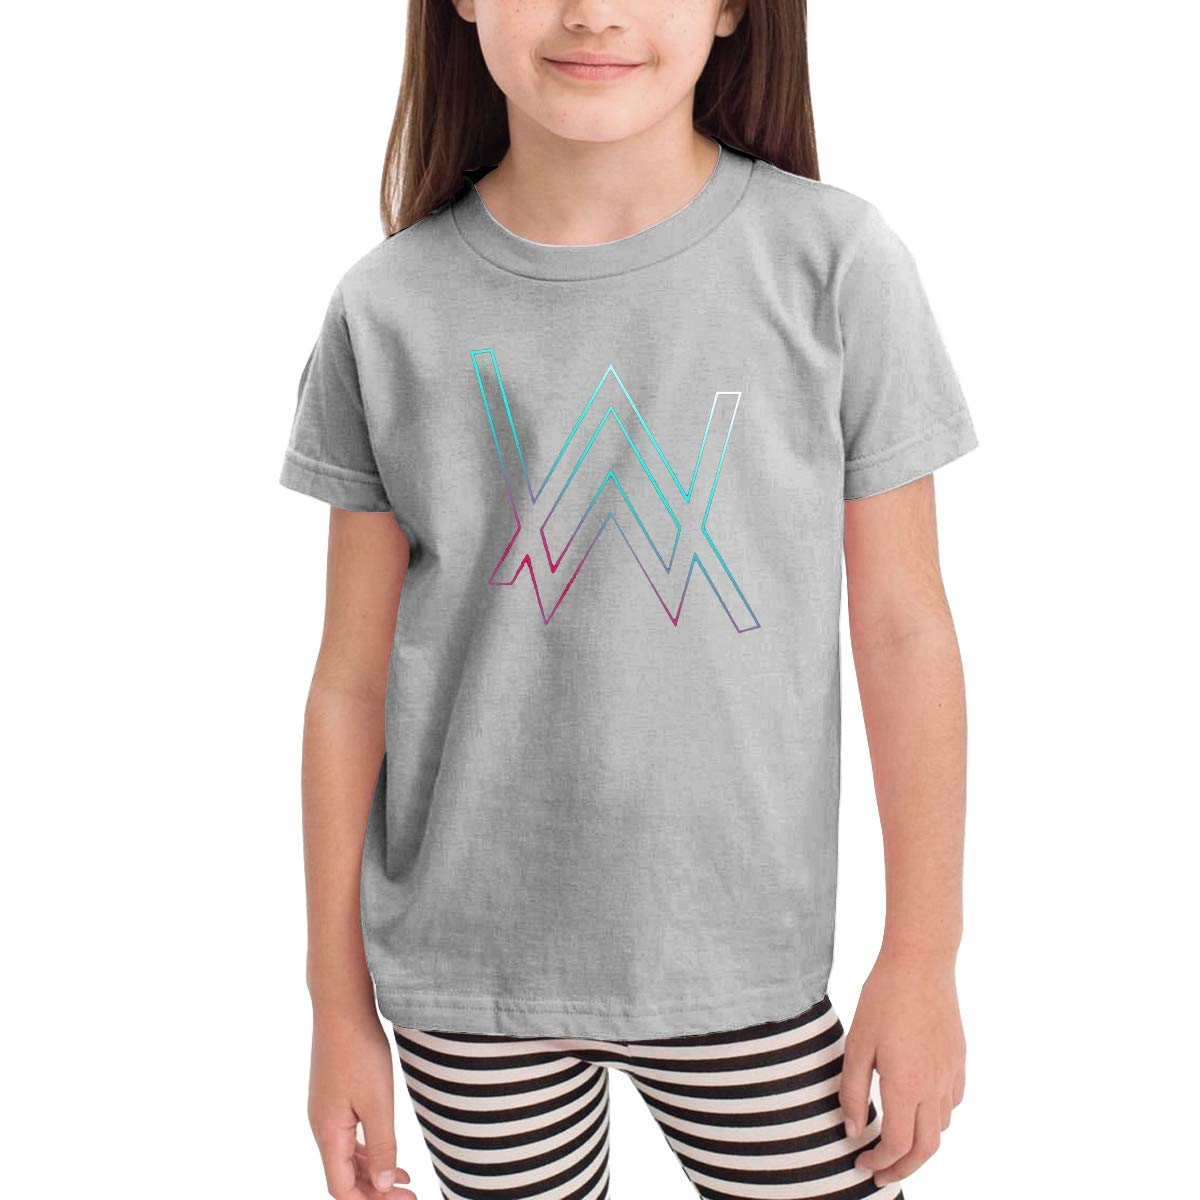 2-6 Year Old Childrens Short Sleeve Unique Sleek Minimalist New Short-Sleeved T-Shirt Alan Walker Logo Gray